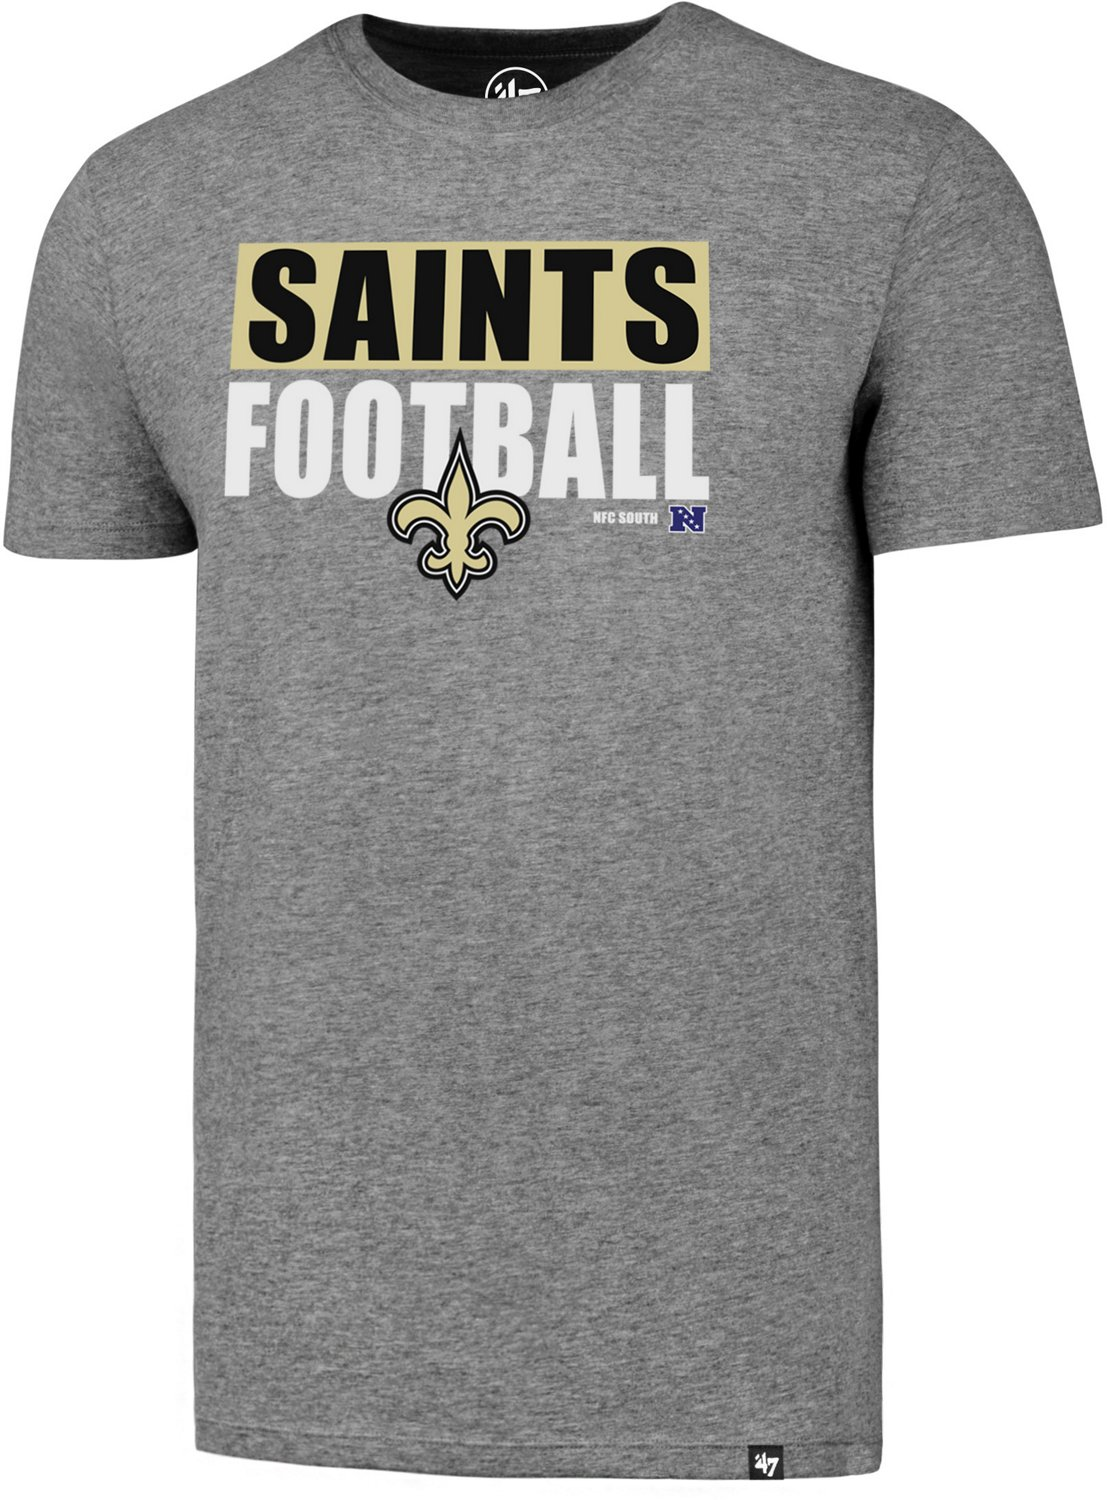 size 40 3ffa3 1b273 '47 New Orleans Saints Football Club T-shirt